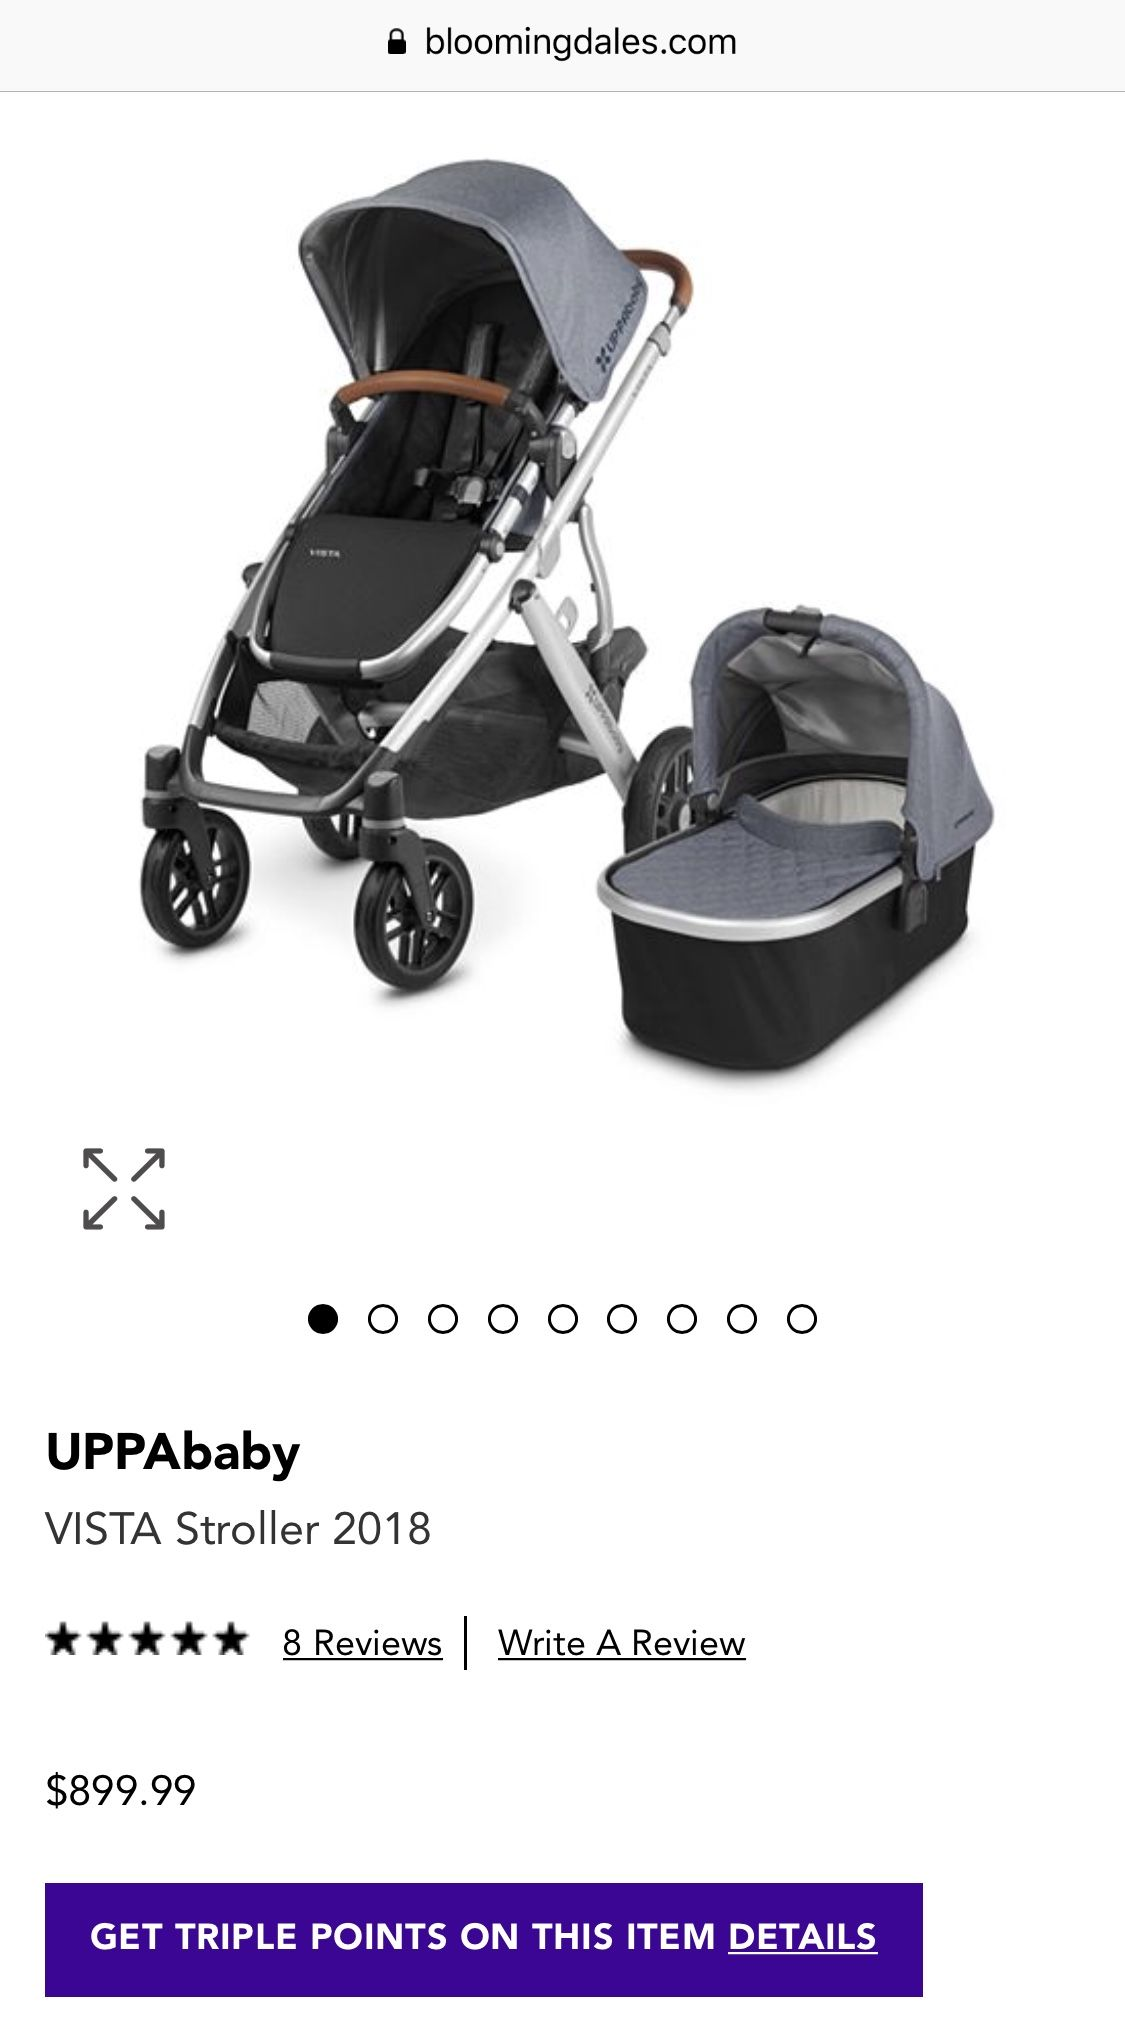 46++ Uppababy stroller reviews canada ideas